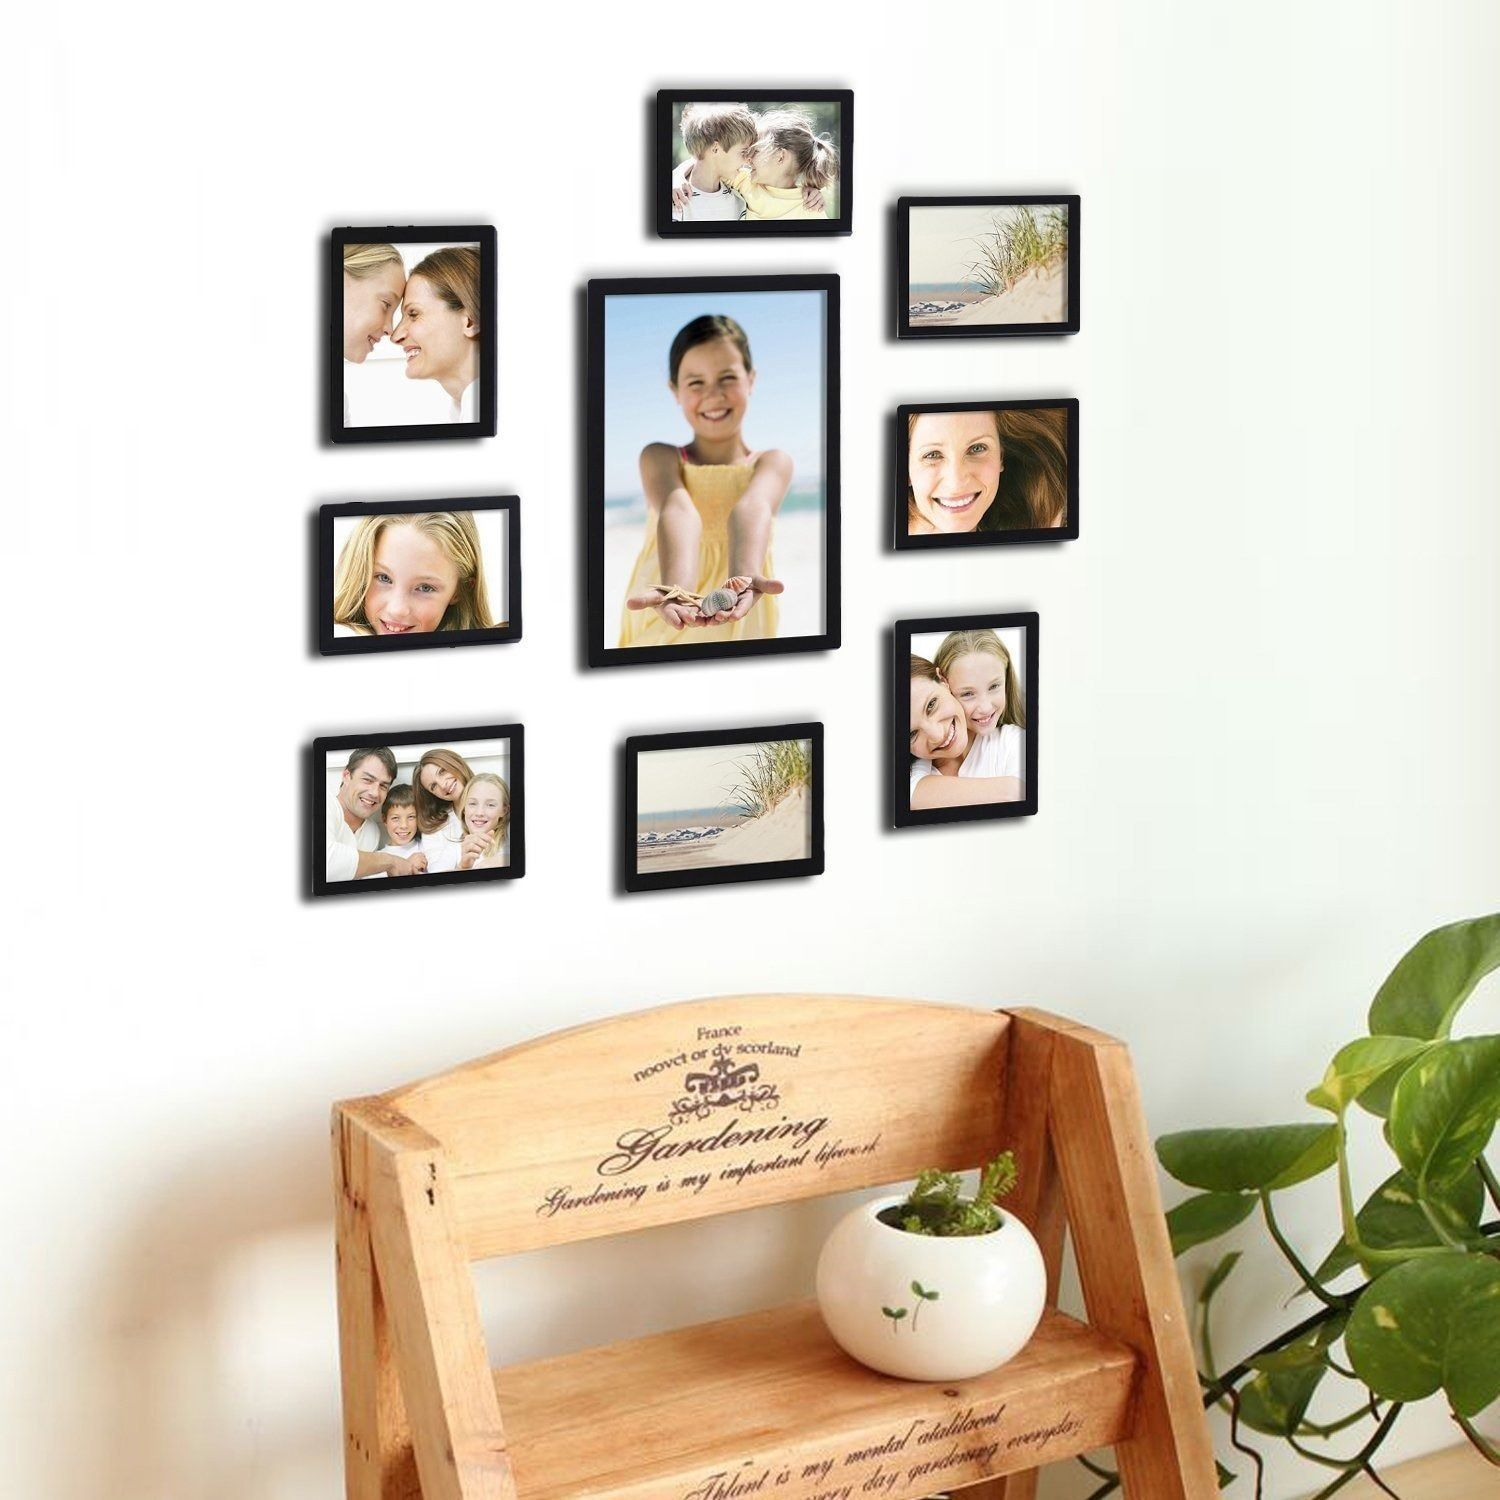 Adeco Decorative Black Wood 10 Piece Photo Frame Set For 8 4 X 6 Inch 1 6 X 8 Inch And 1 8 X 12 Inch Pictures Wall Hanging Photo Frames Hanging Photos Decor